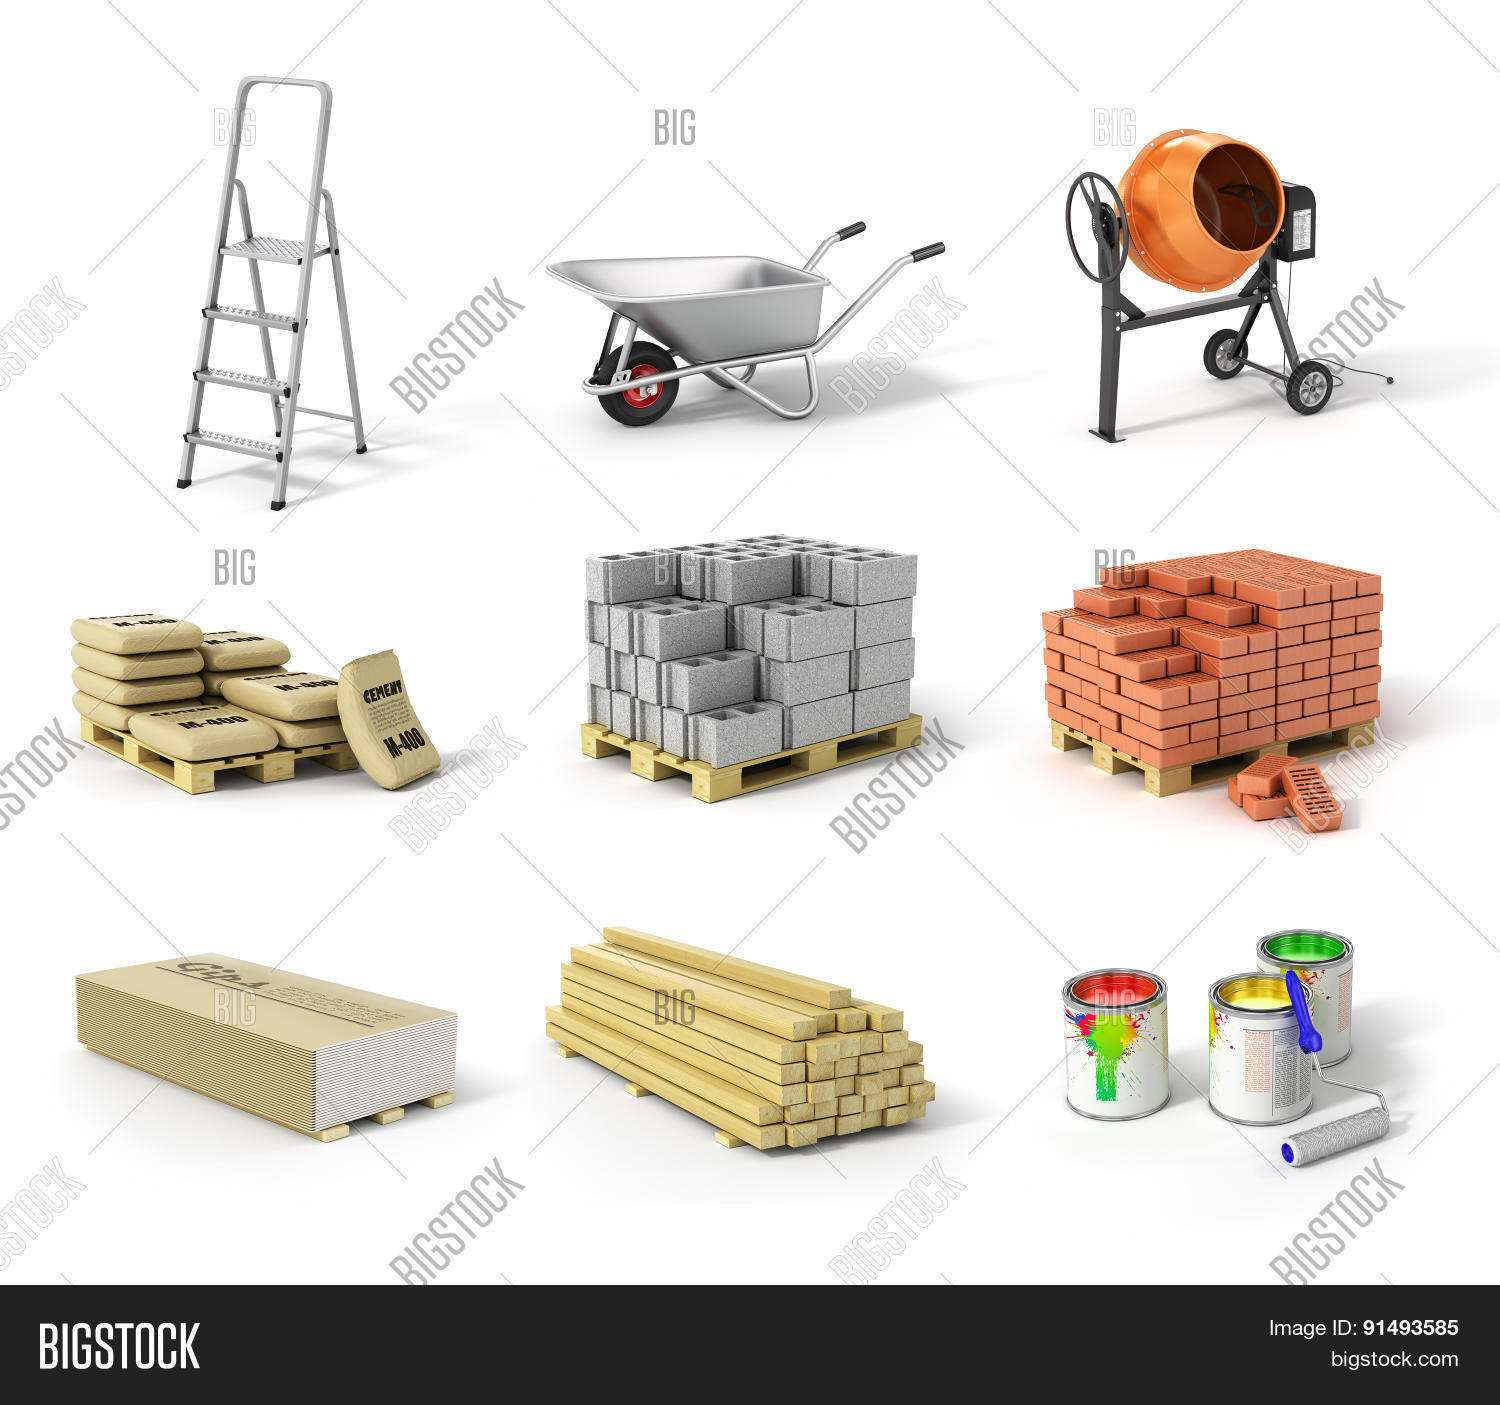 """ladder wheel <strong>concrete<\/strong> mixer cement bricks gypsum beams and paint"""" style=""""max-width:450px;float:left;padding:10px 10px 10px 0px;border:0px;""""></a></p> </p> <p>You ought to consider a few points before you make any kind of <a href="""